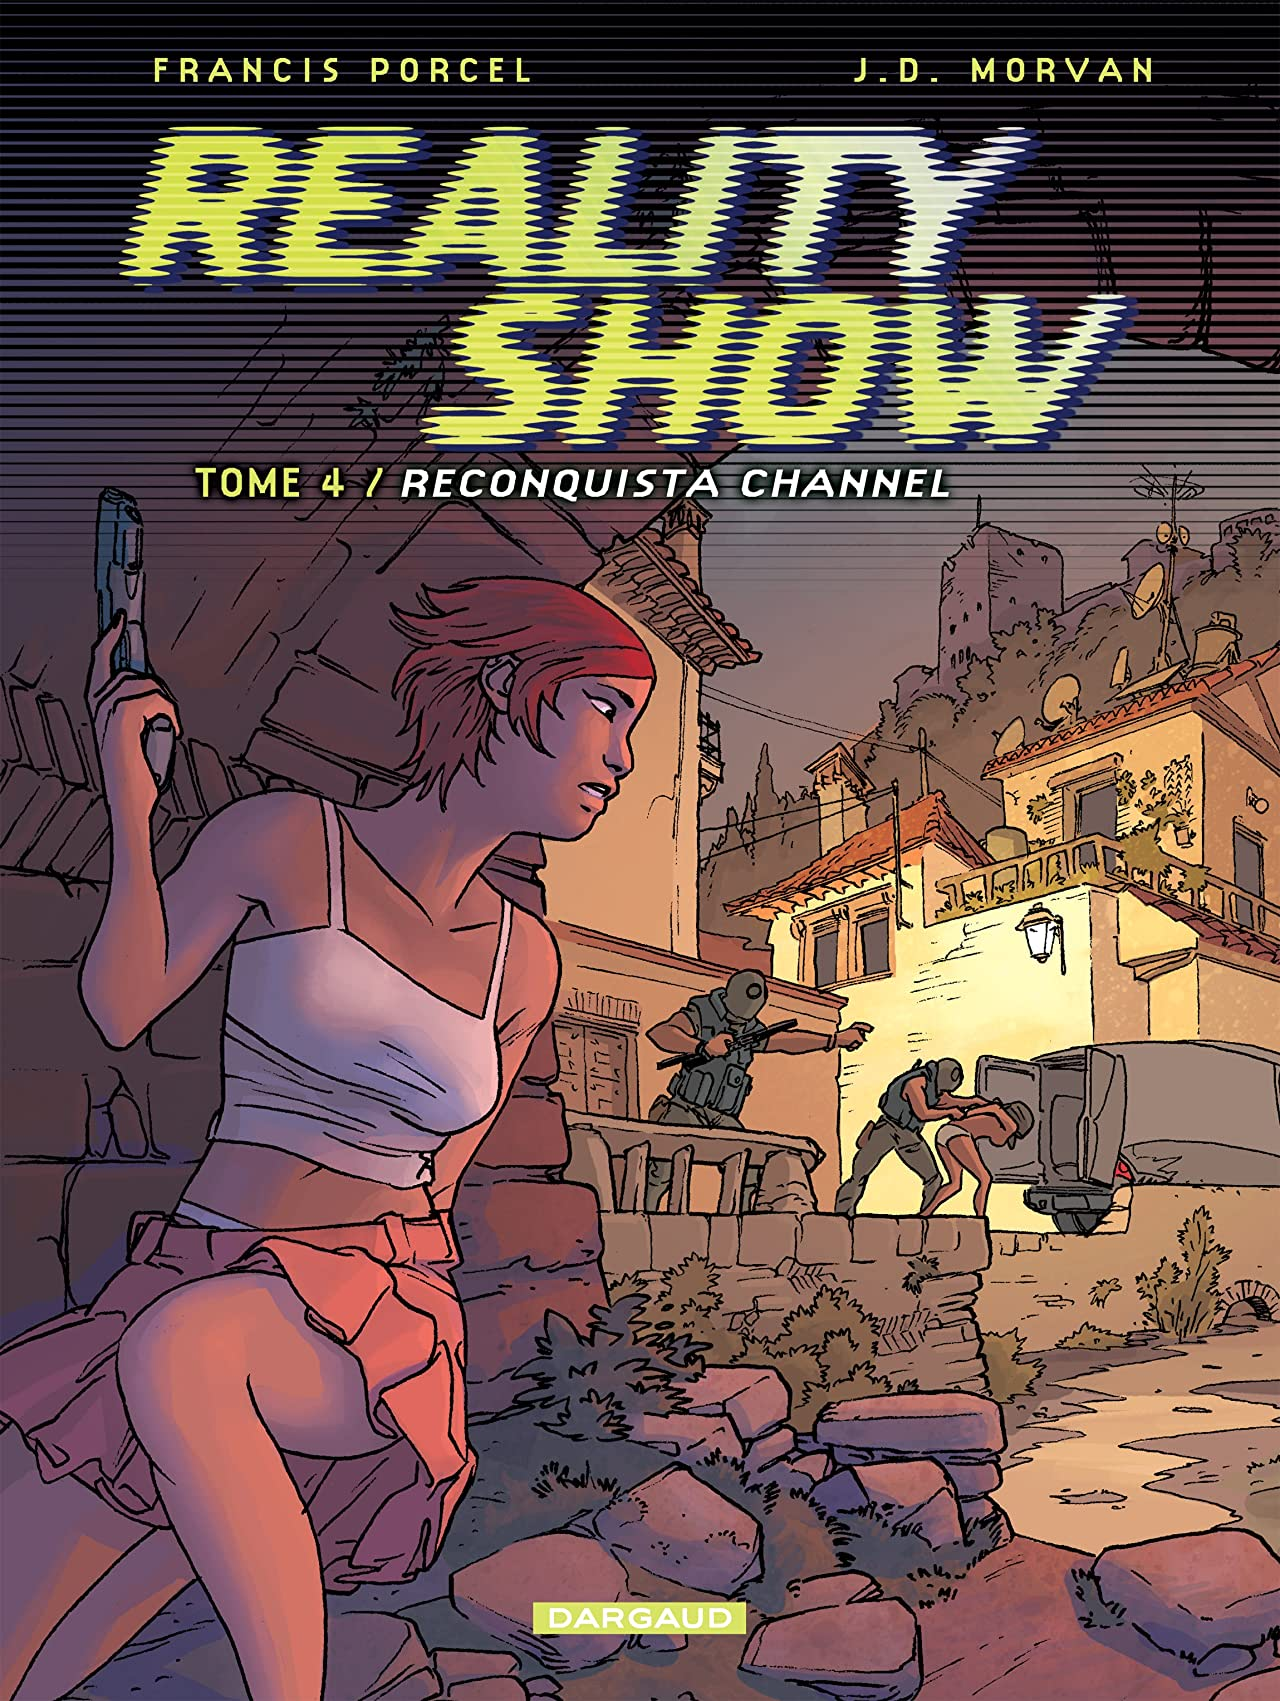 Reality Show Vol. 4: Reconquista Channel